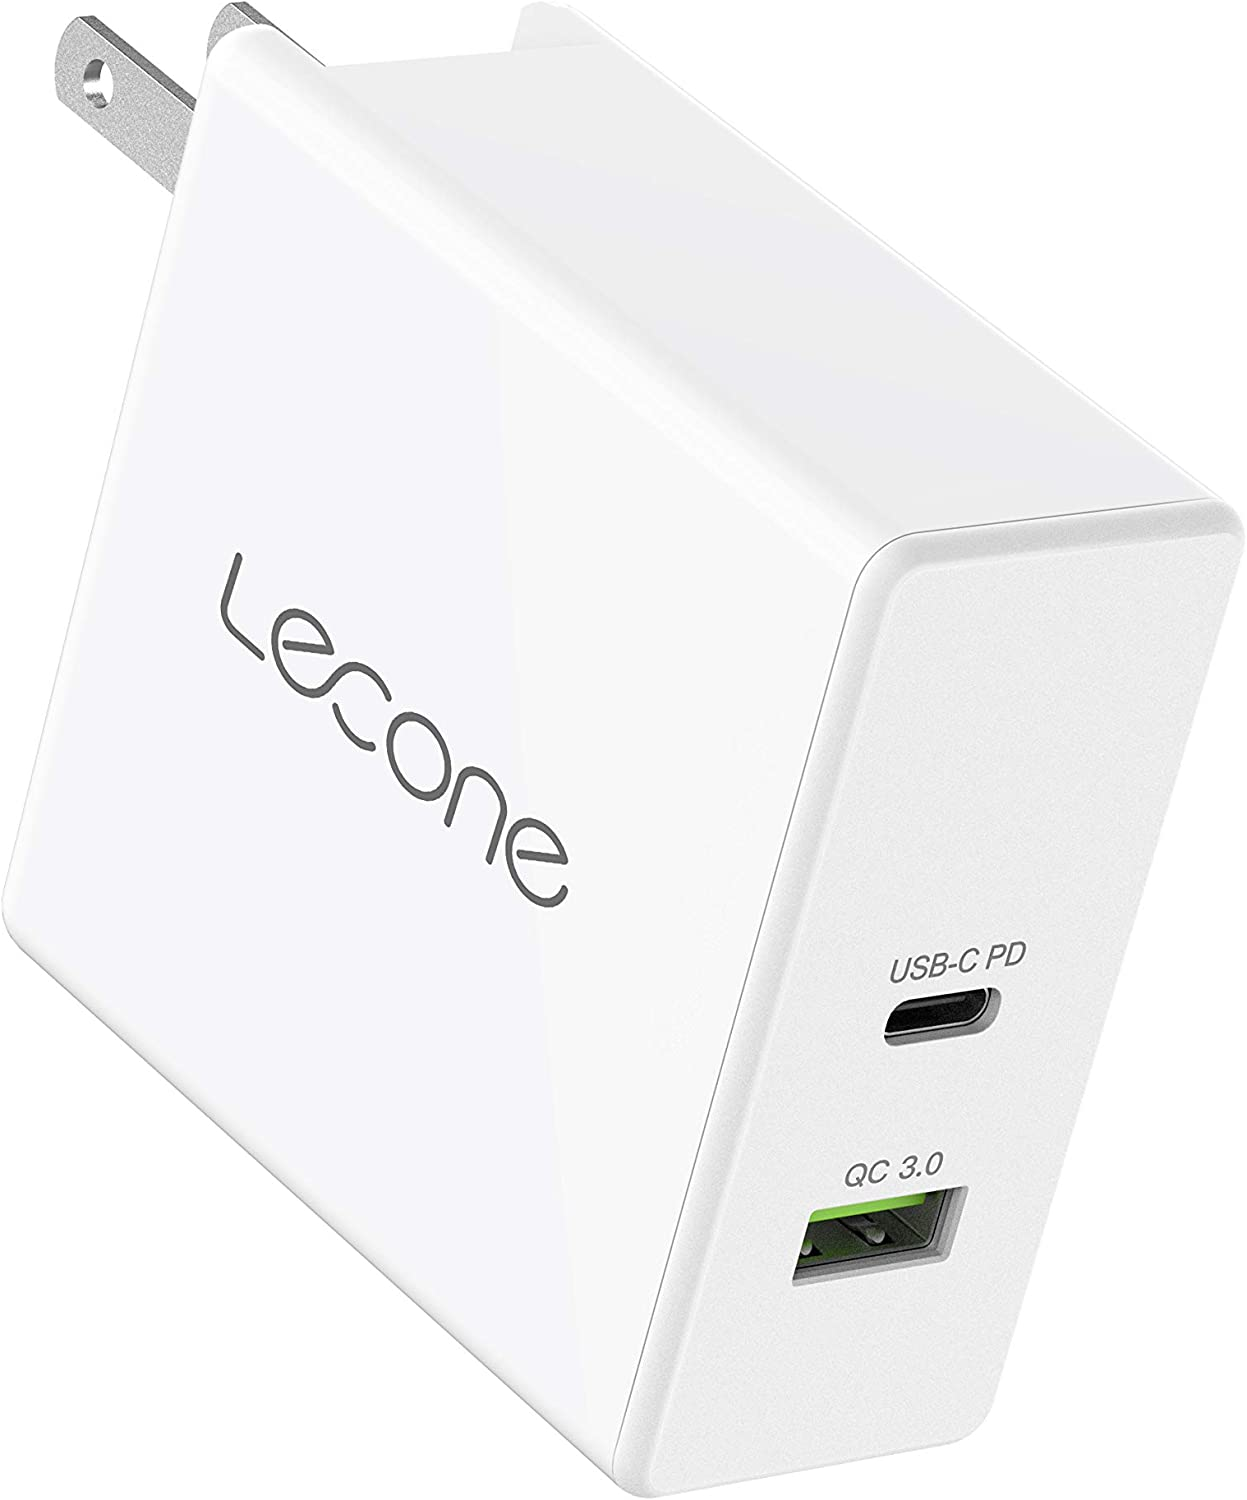 Lecone 60W USB C Wall Charger, 42W Power Delivery & 18W QC 3.0 Dual Port USB Charger, Compatible with iPhone 11/11 Pro / 11 Pro Max, MacBook Pro Air, Dell XPS, iPad Pro 2018 Nintendo Switch and More